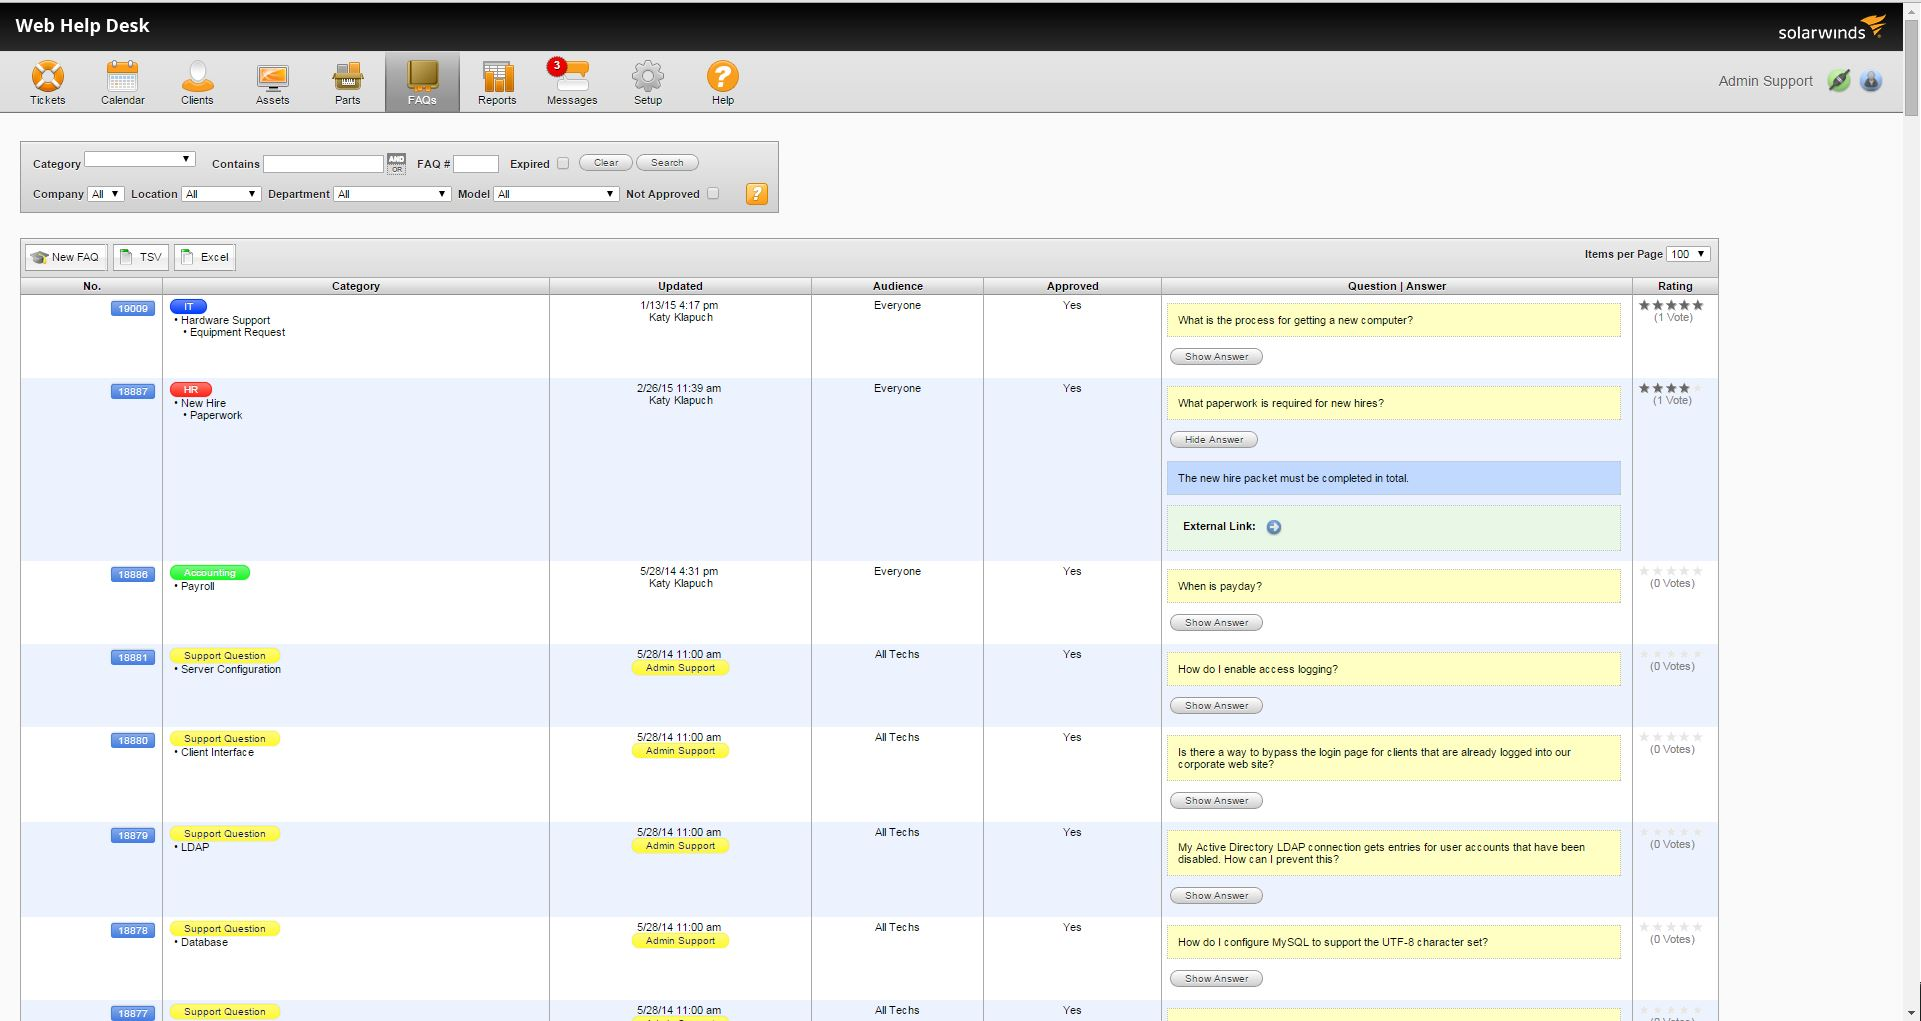 solarwinds screenshot